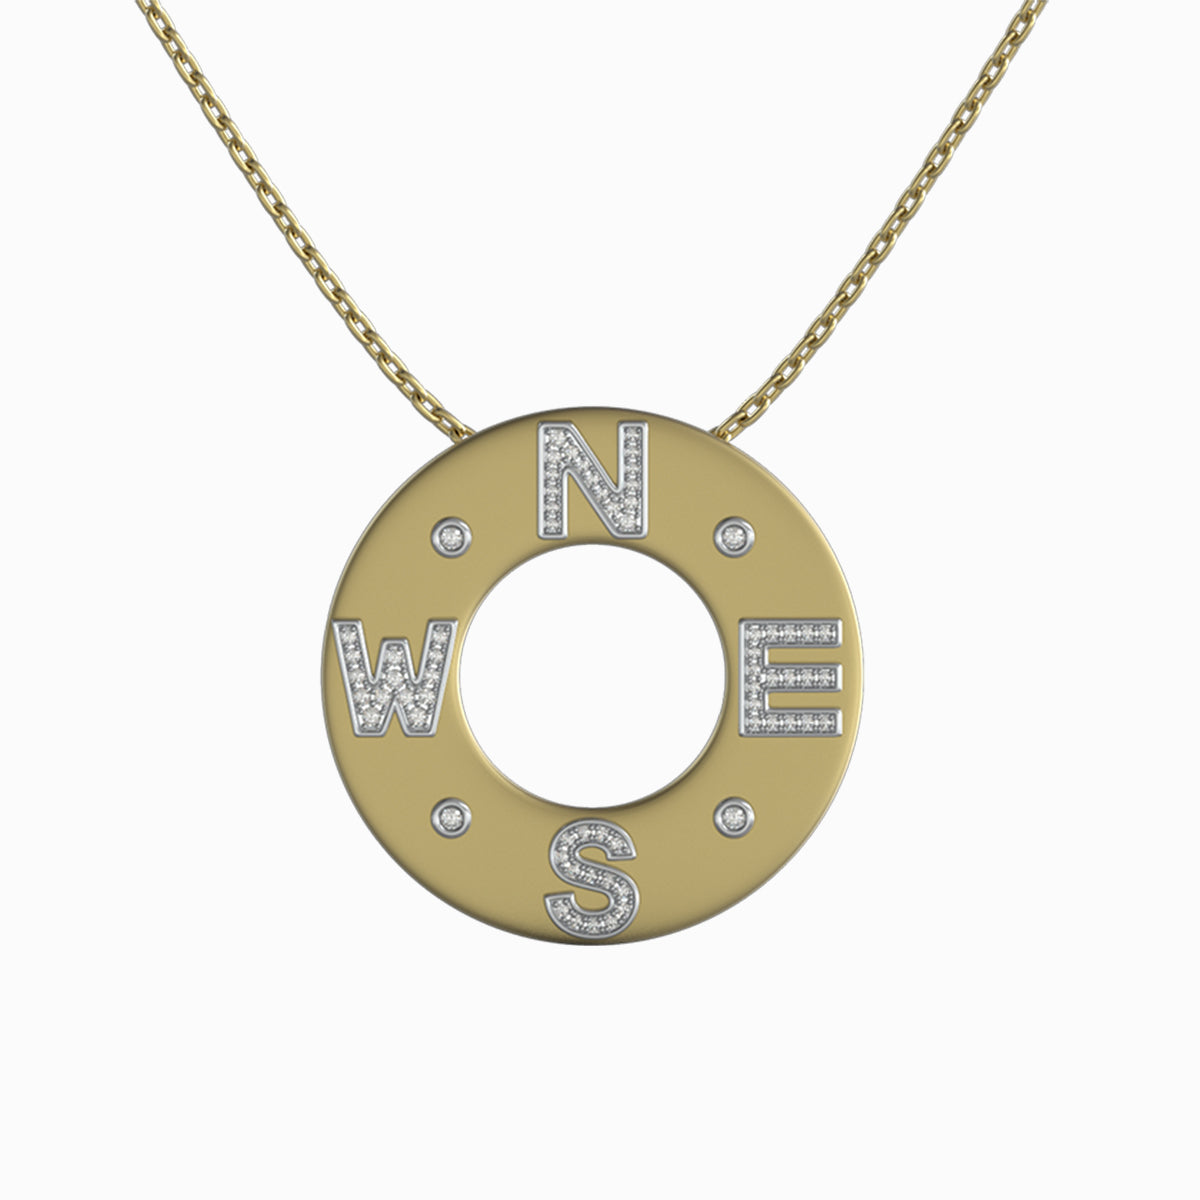 Shimansky True North Pavé Pendant 18k yellow gold